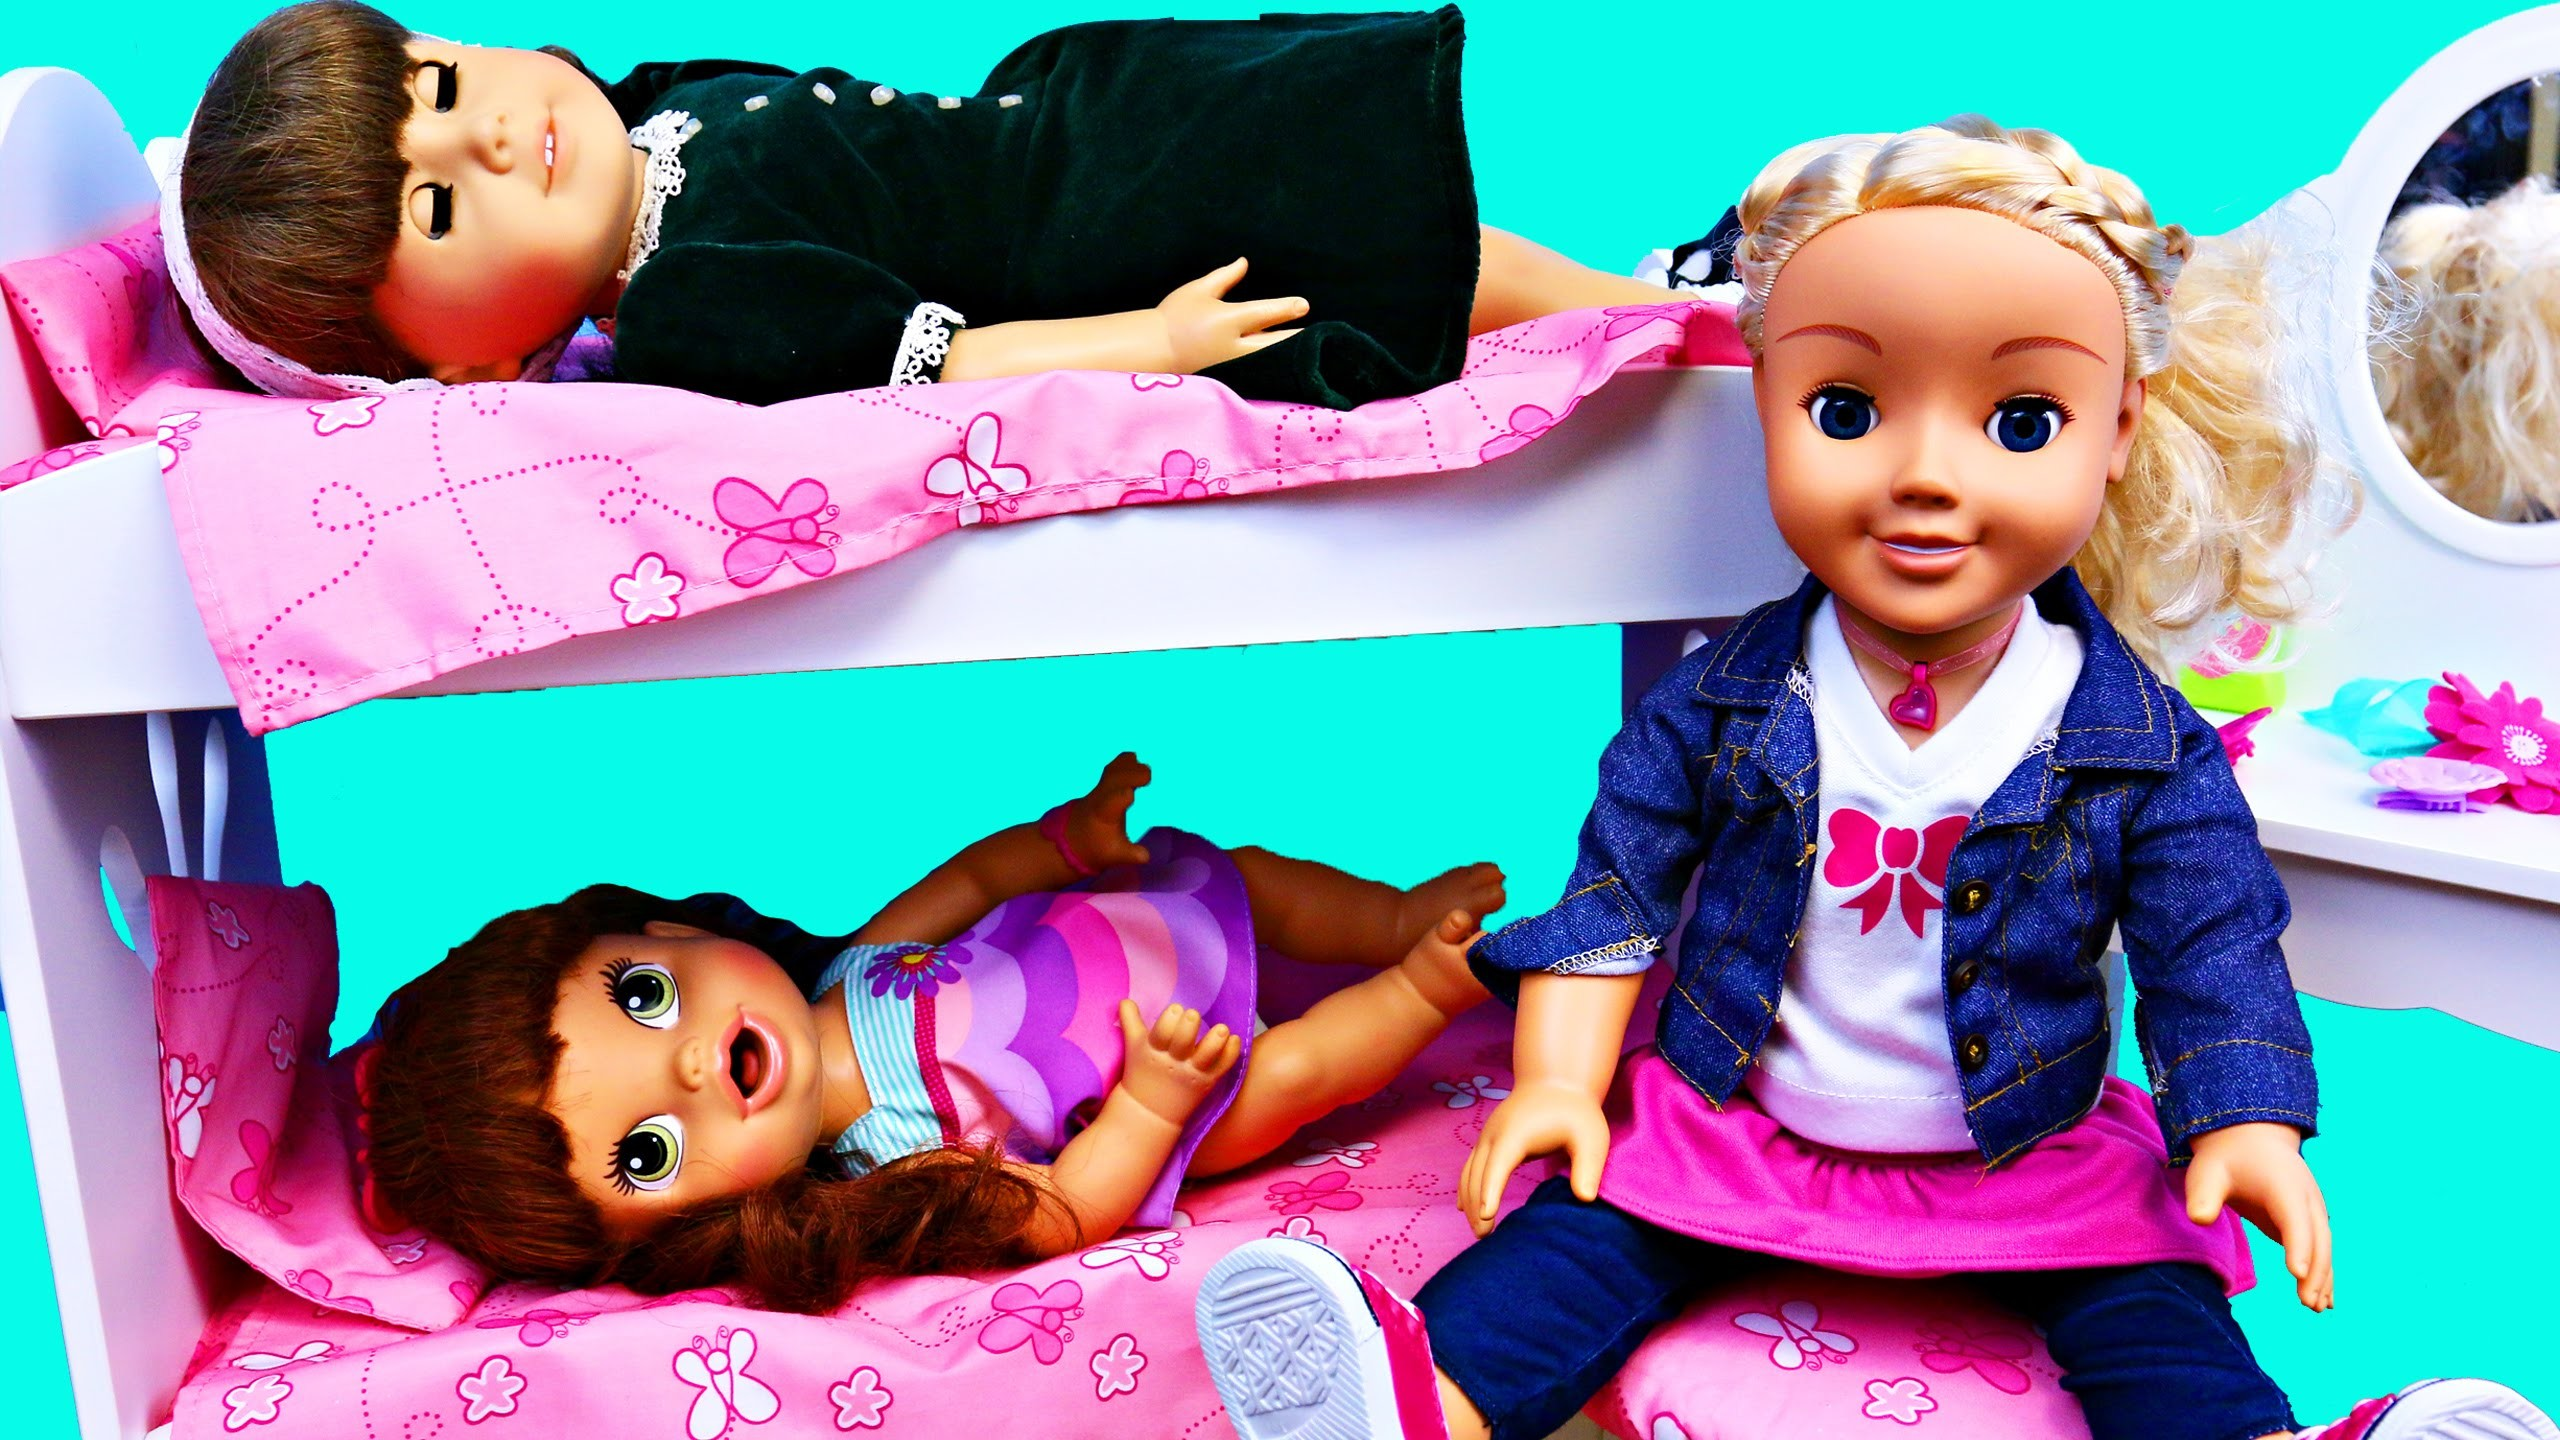 BABY ALIVE Sleepover With Lucy, AMERICAN GIRL DOLLS Molly & My Friend Cayla  Hair Makeover – YouTube